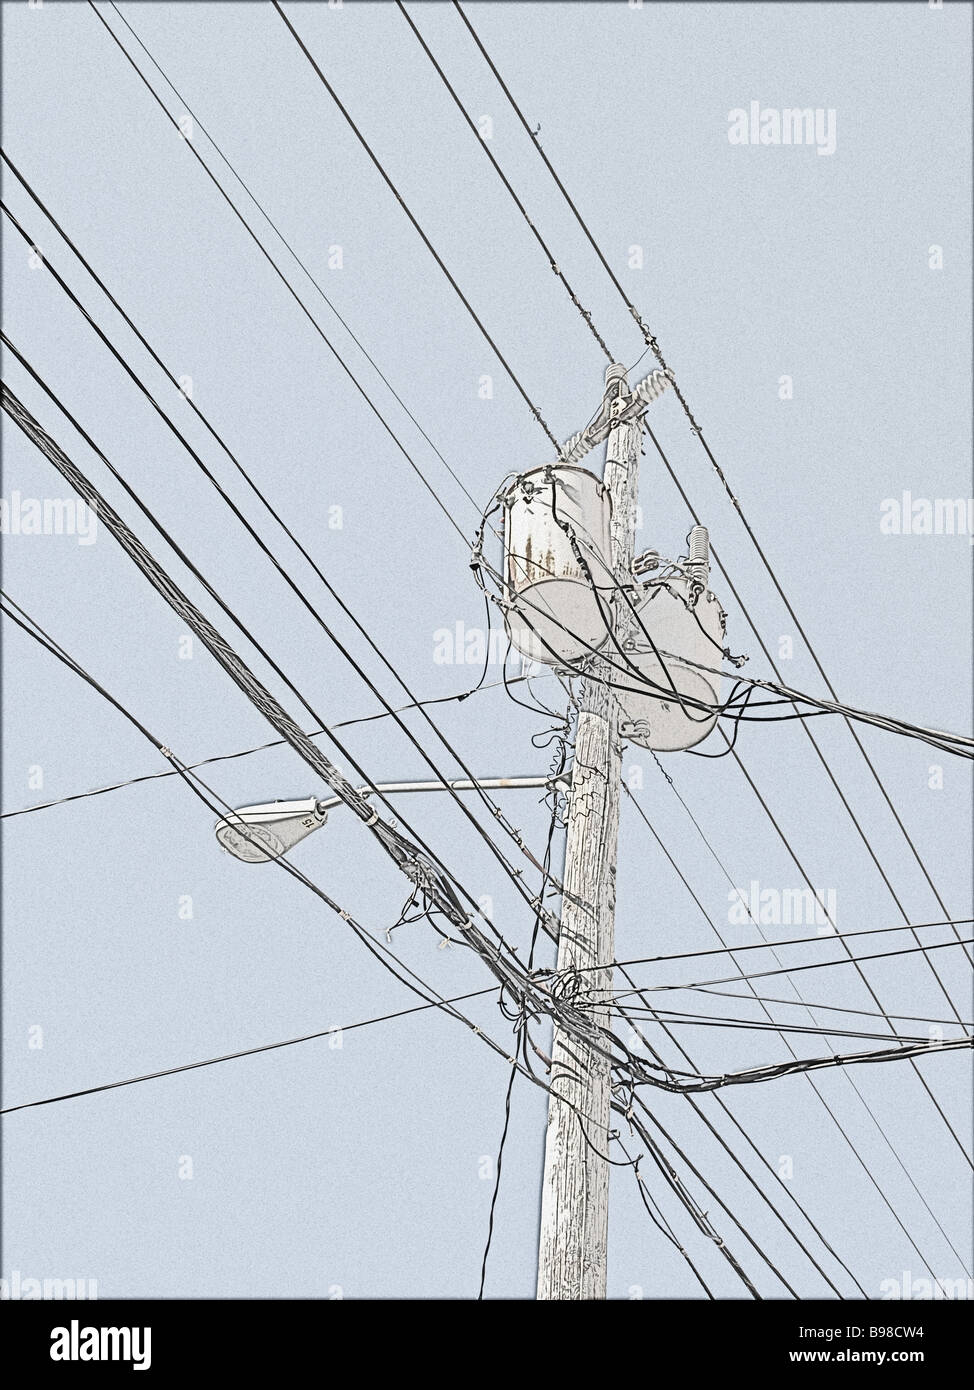 hight resolution of utility pole with generator street lamp and wires in a drawing type image from photograph